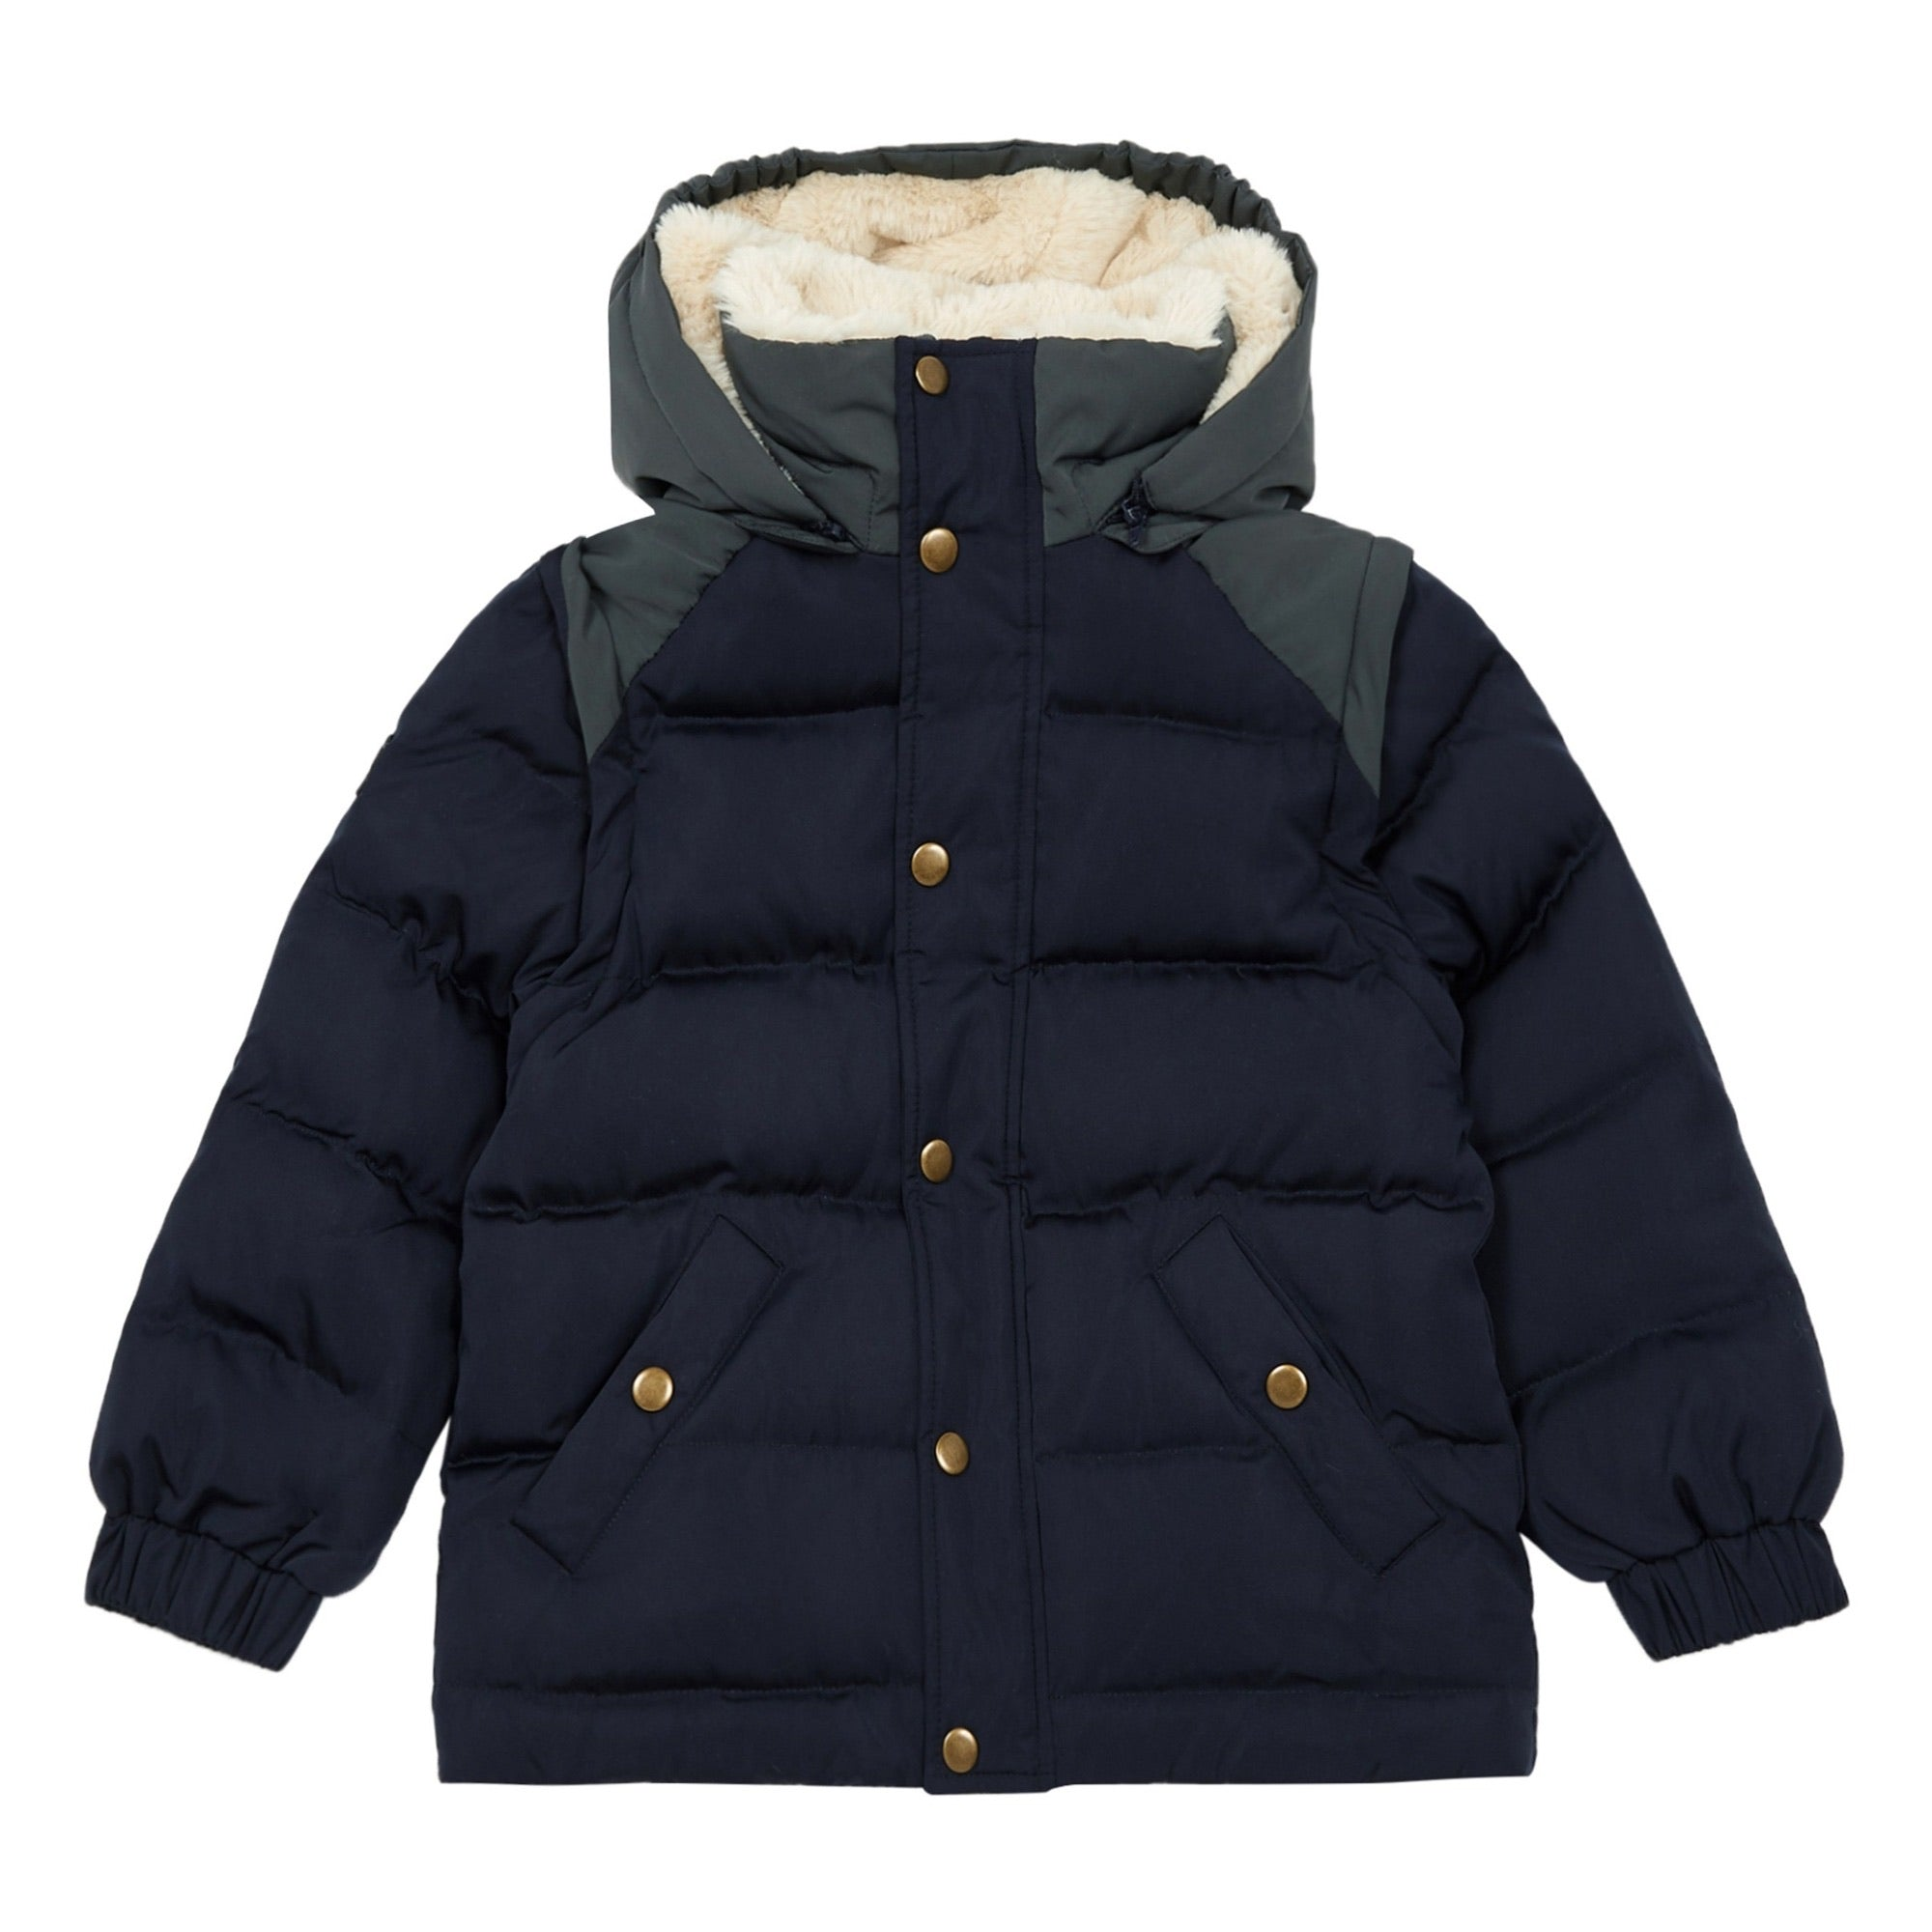 Hooded puffer jacket with removable sleeves Navy